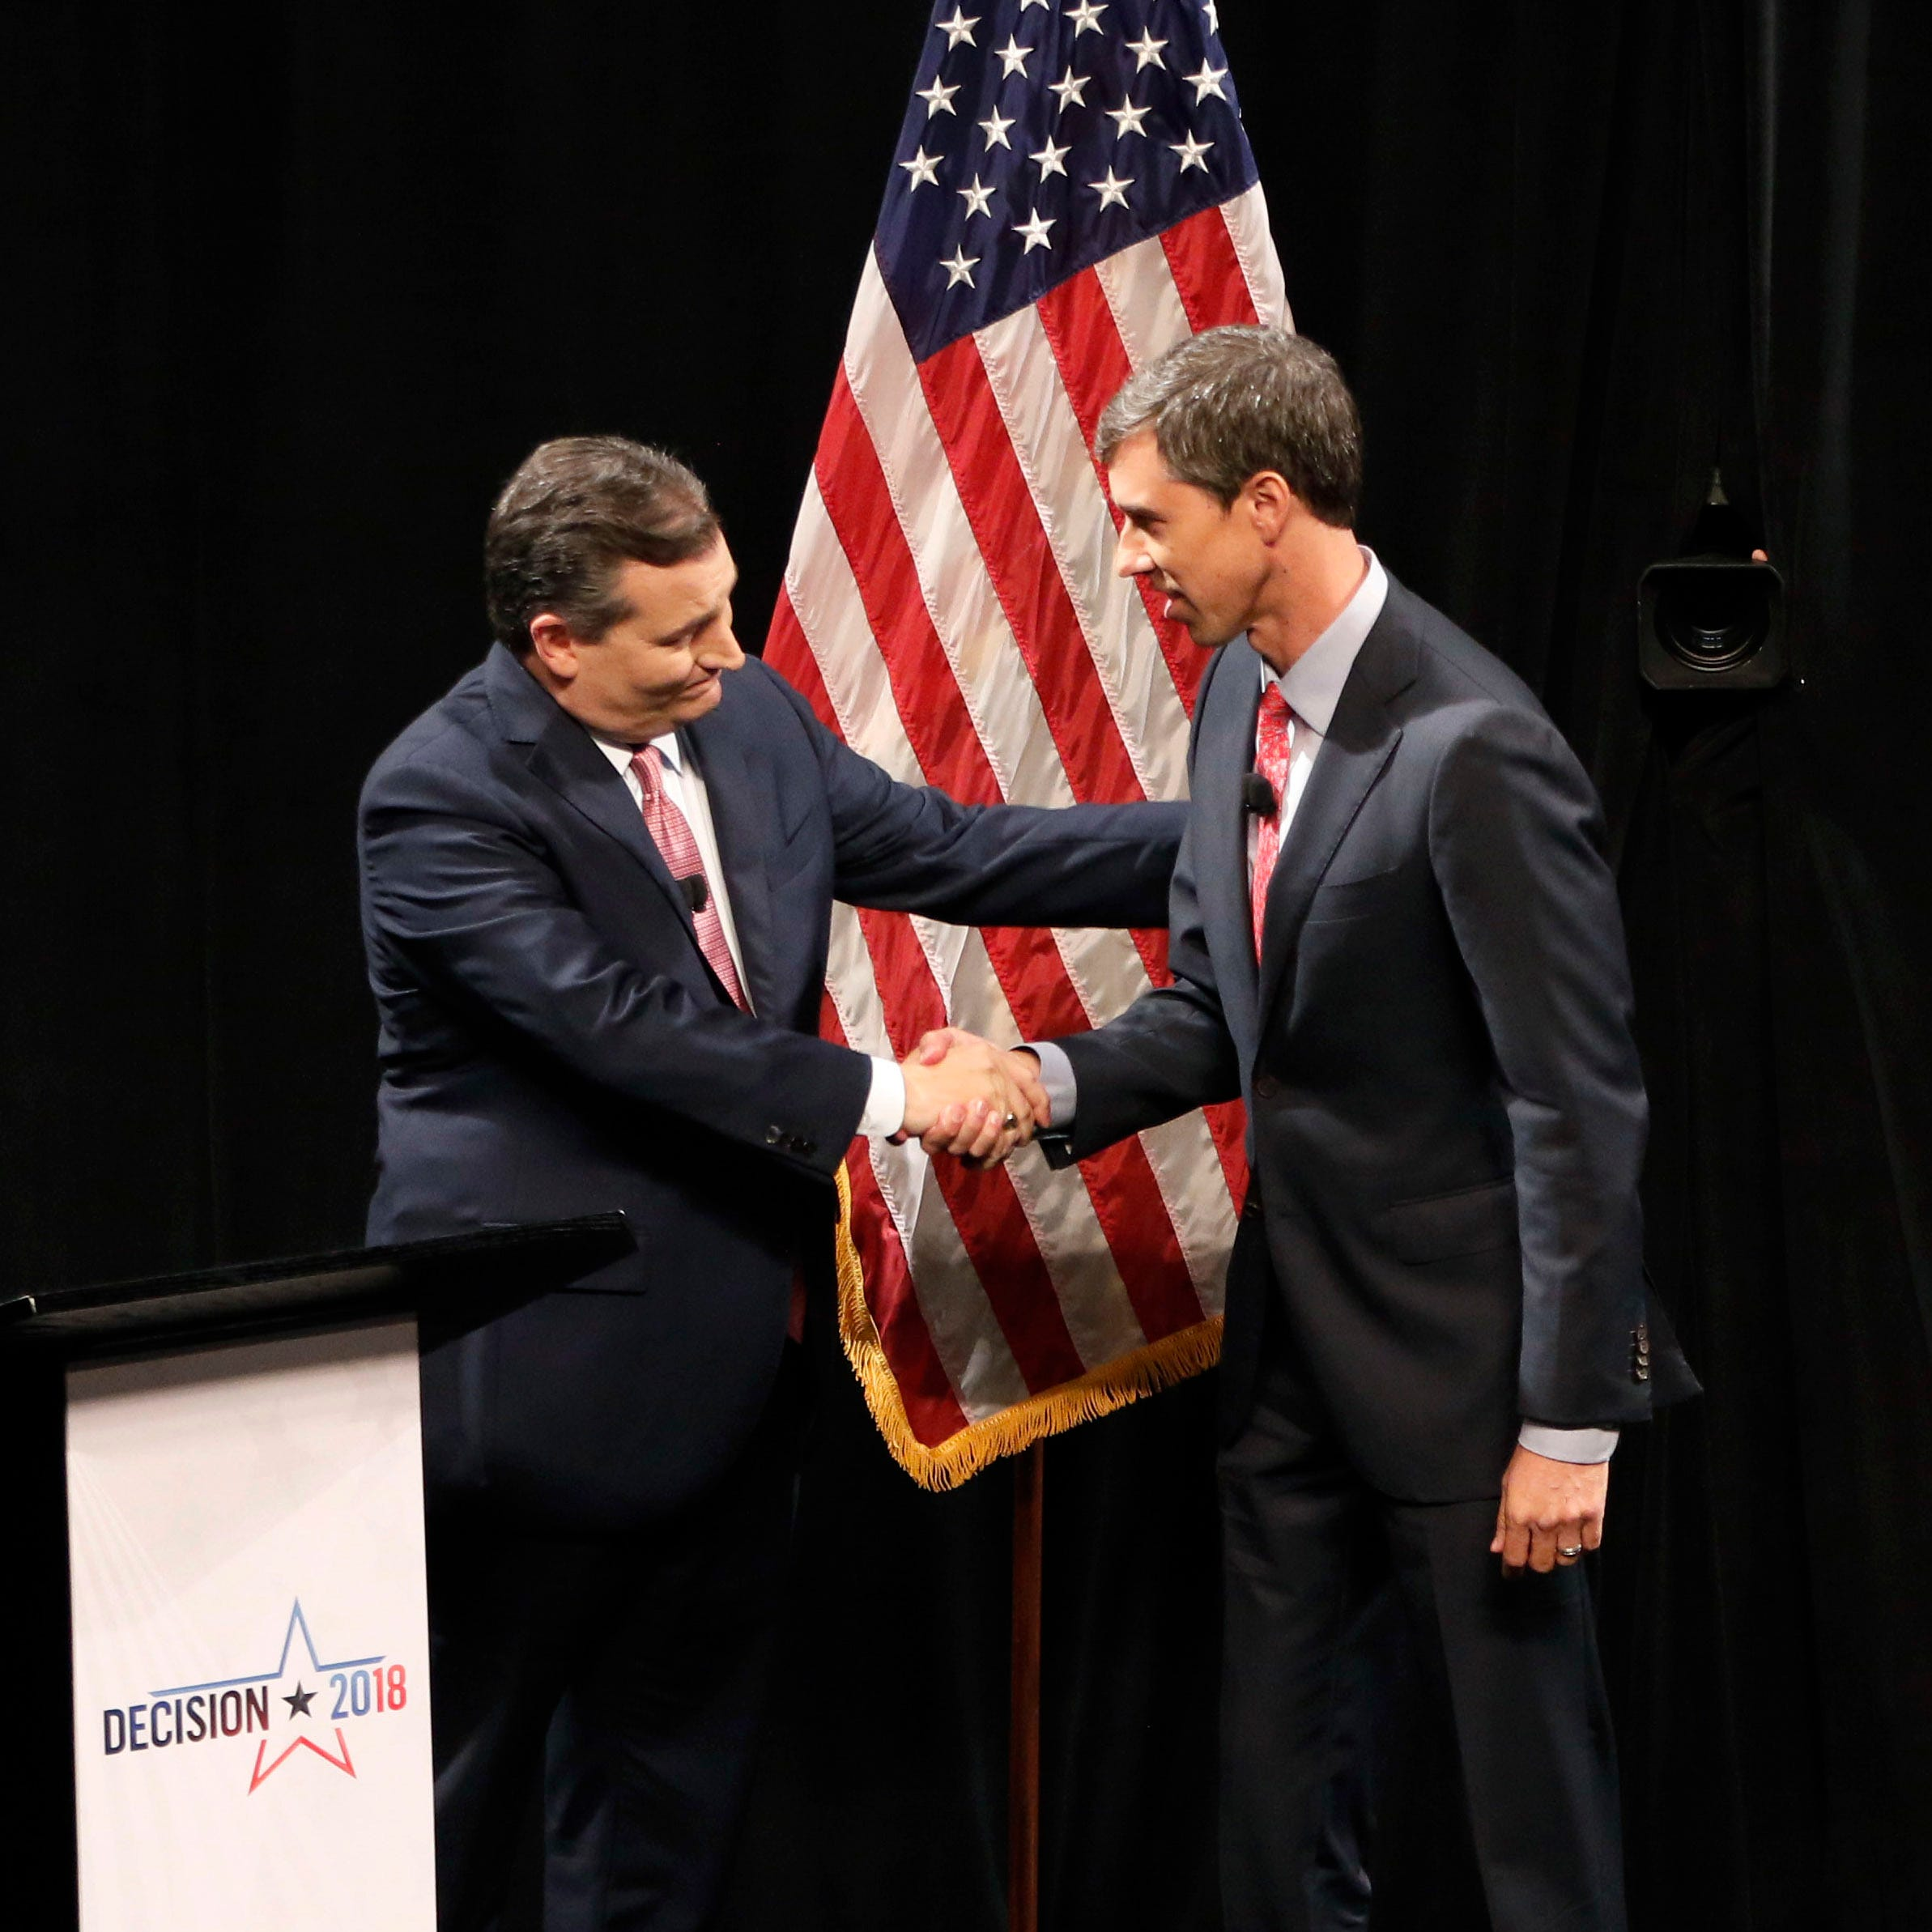 Ted Cruz and Beto O'Rourke debated Friday. Here's what happened.